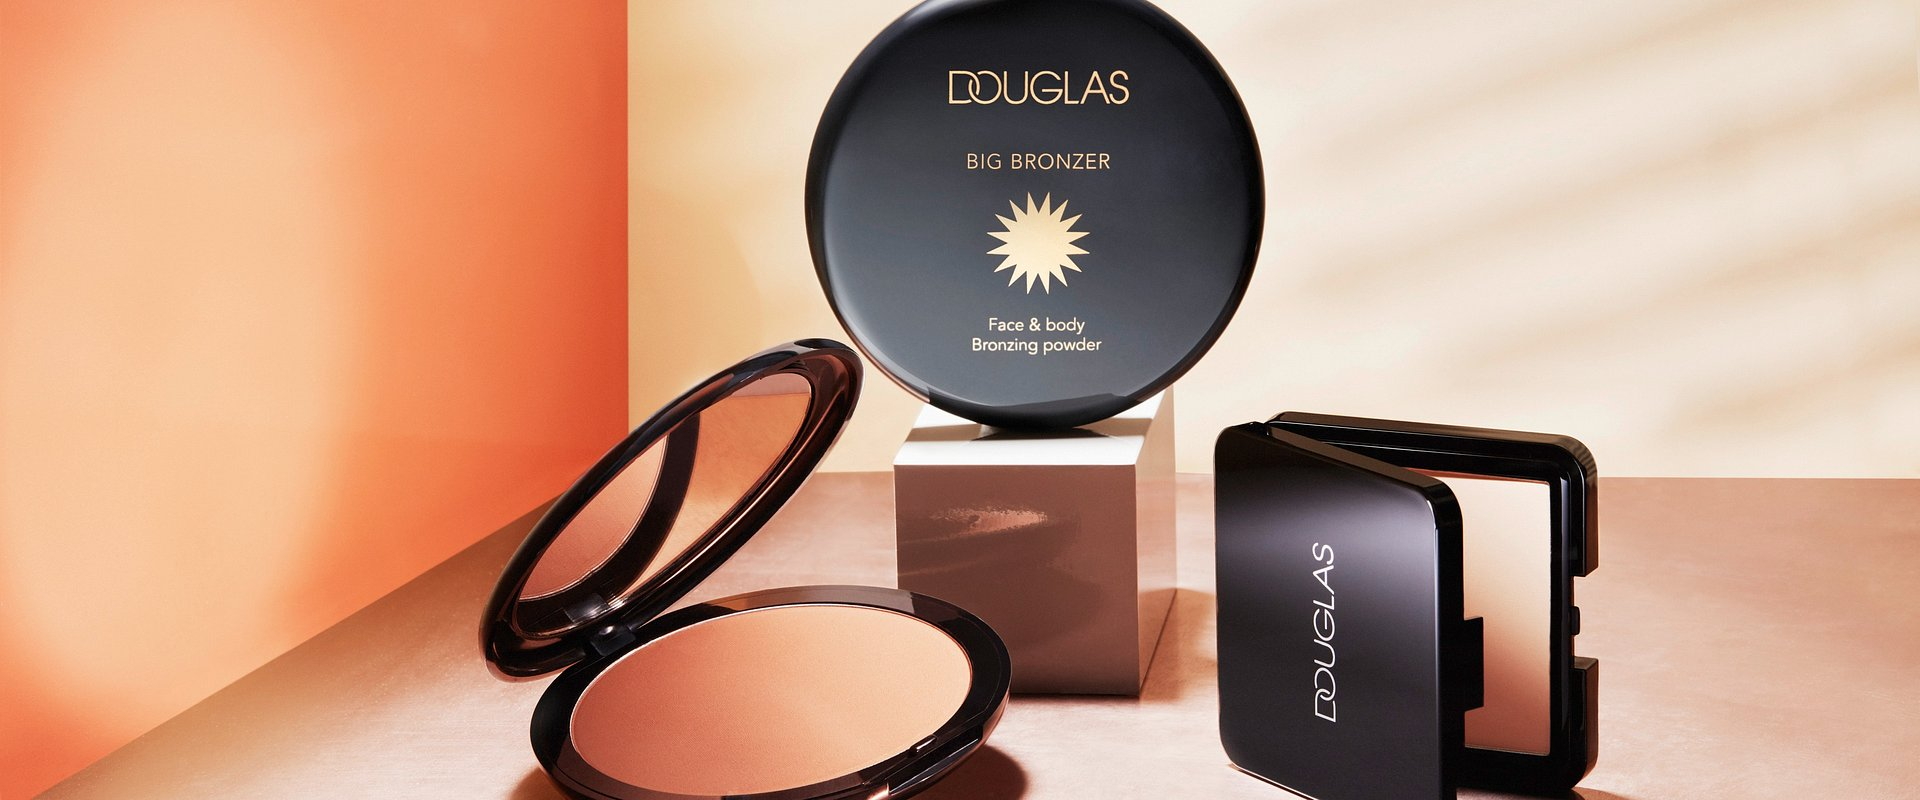 Kissed by the sun – rozpocznij letni sezon z Douglas